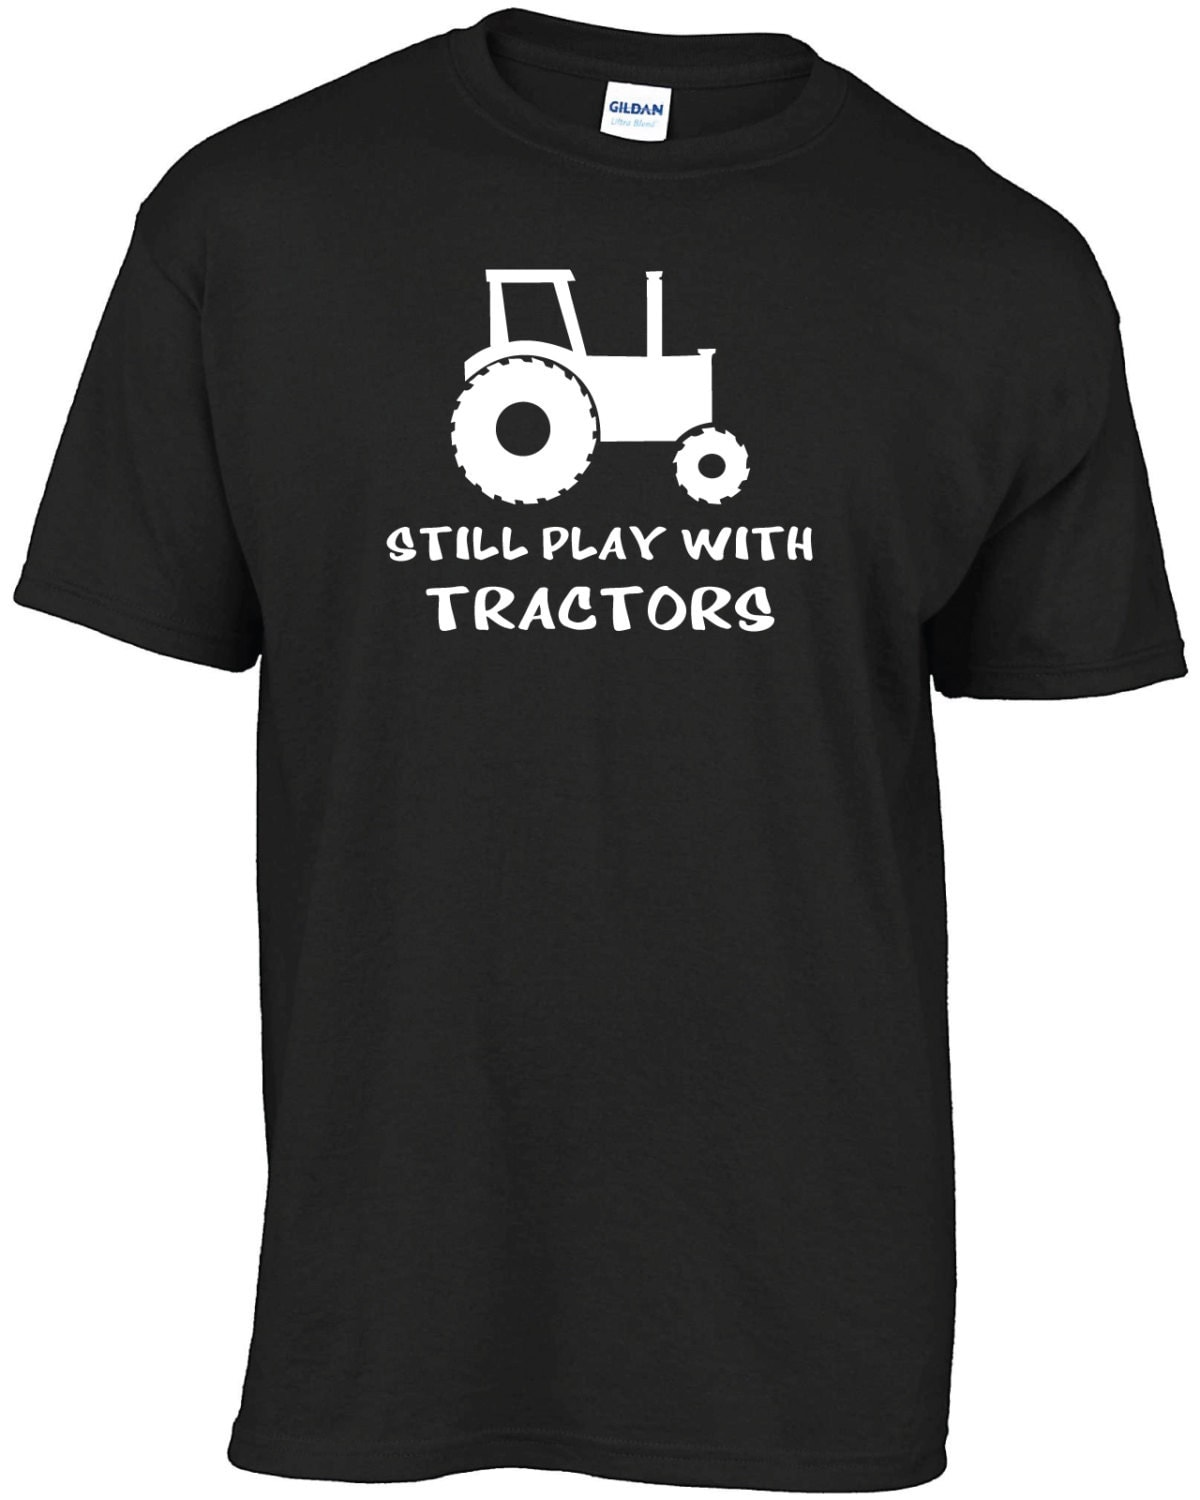 Still play with tractors tshirt